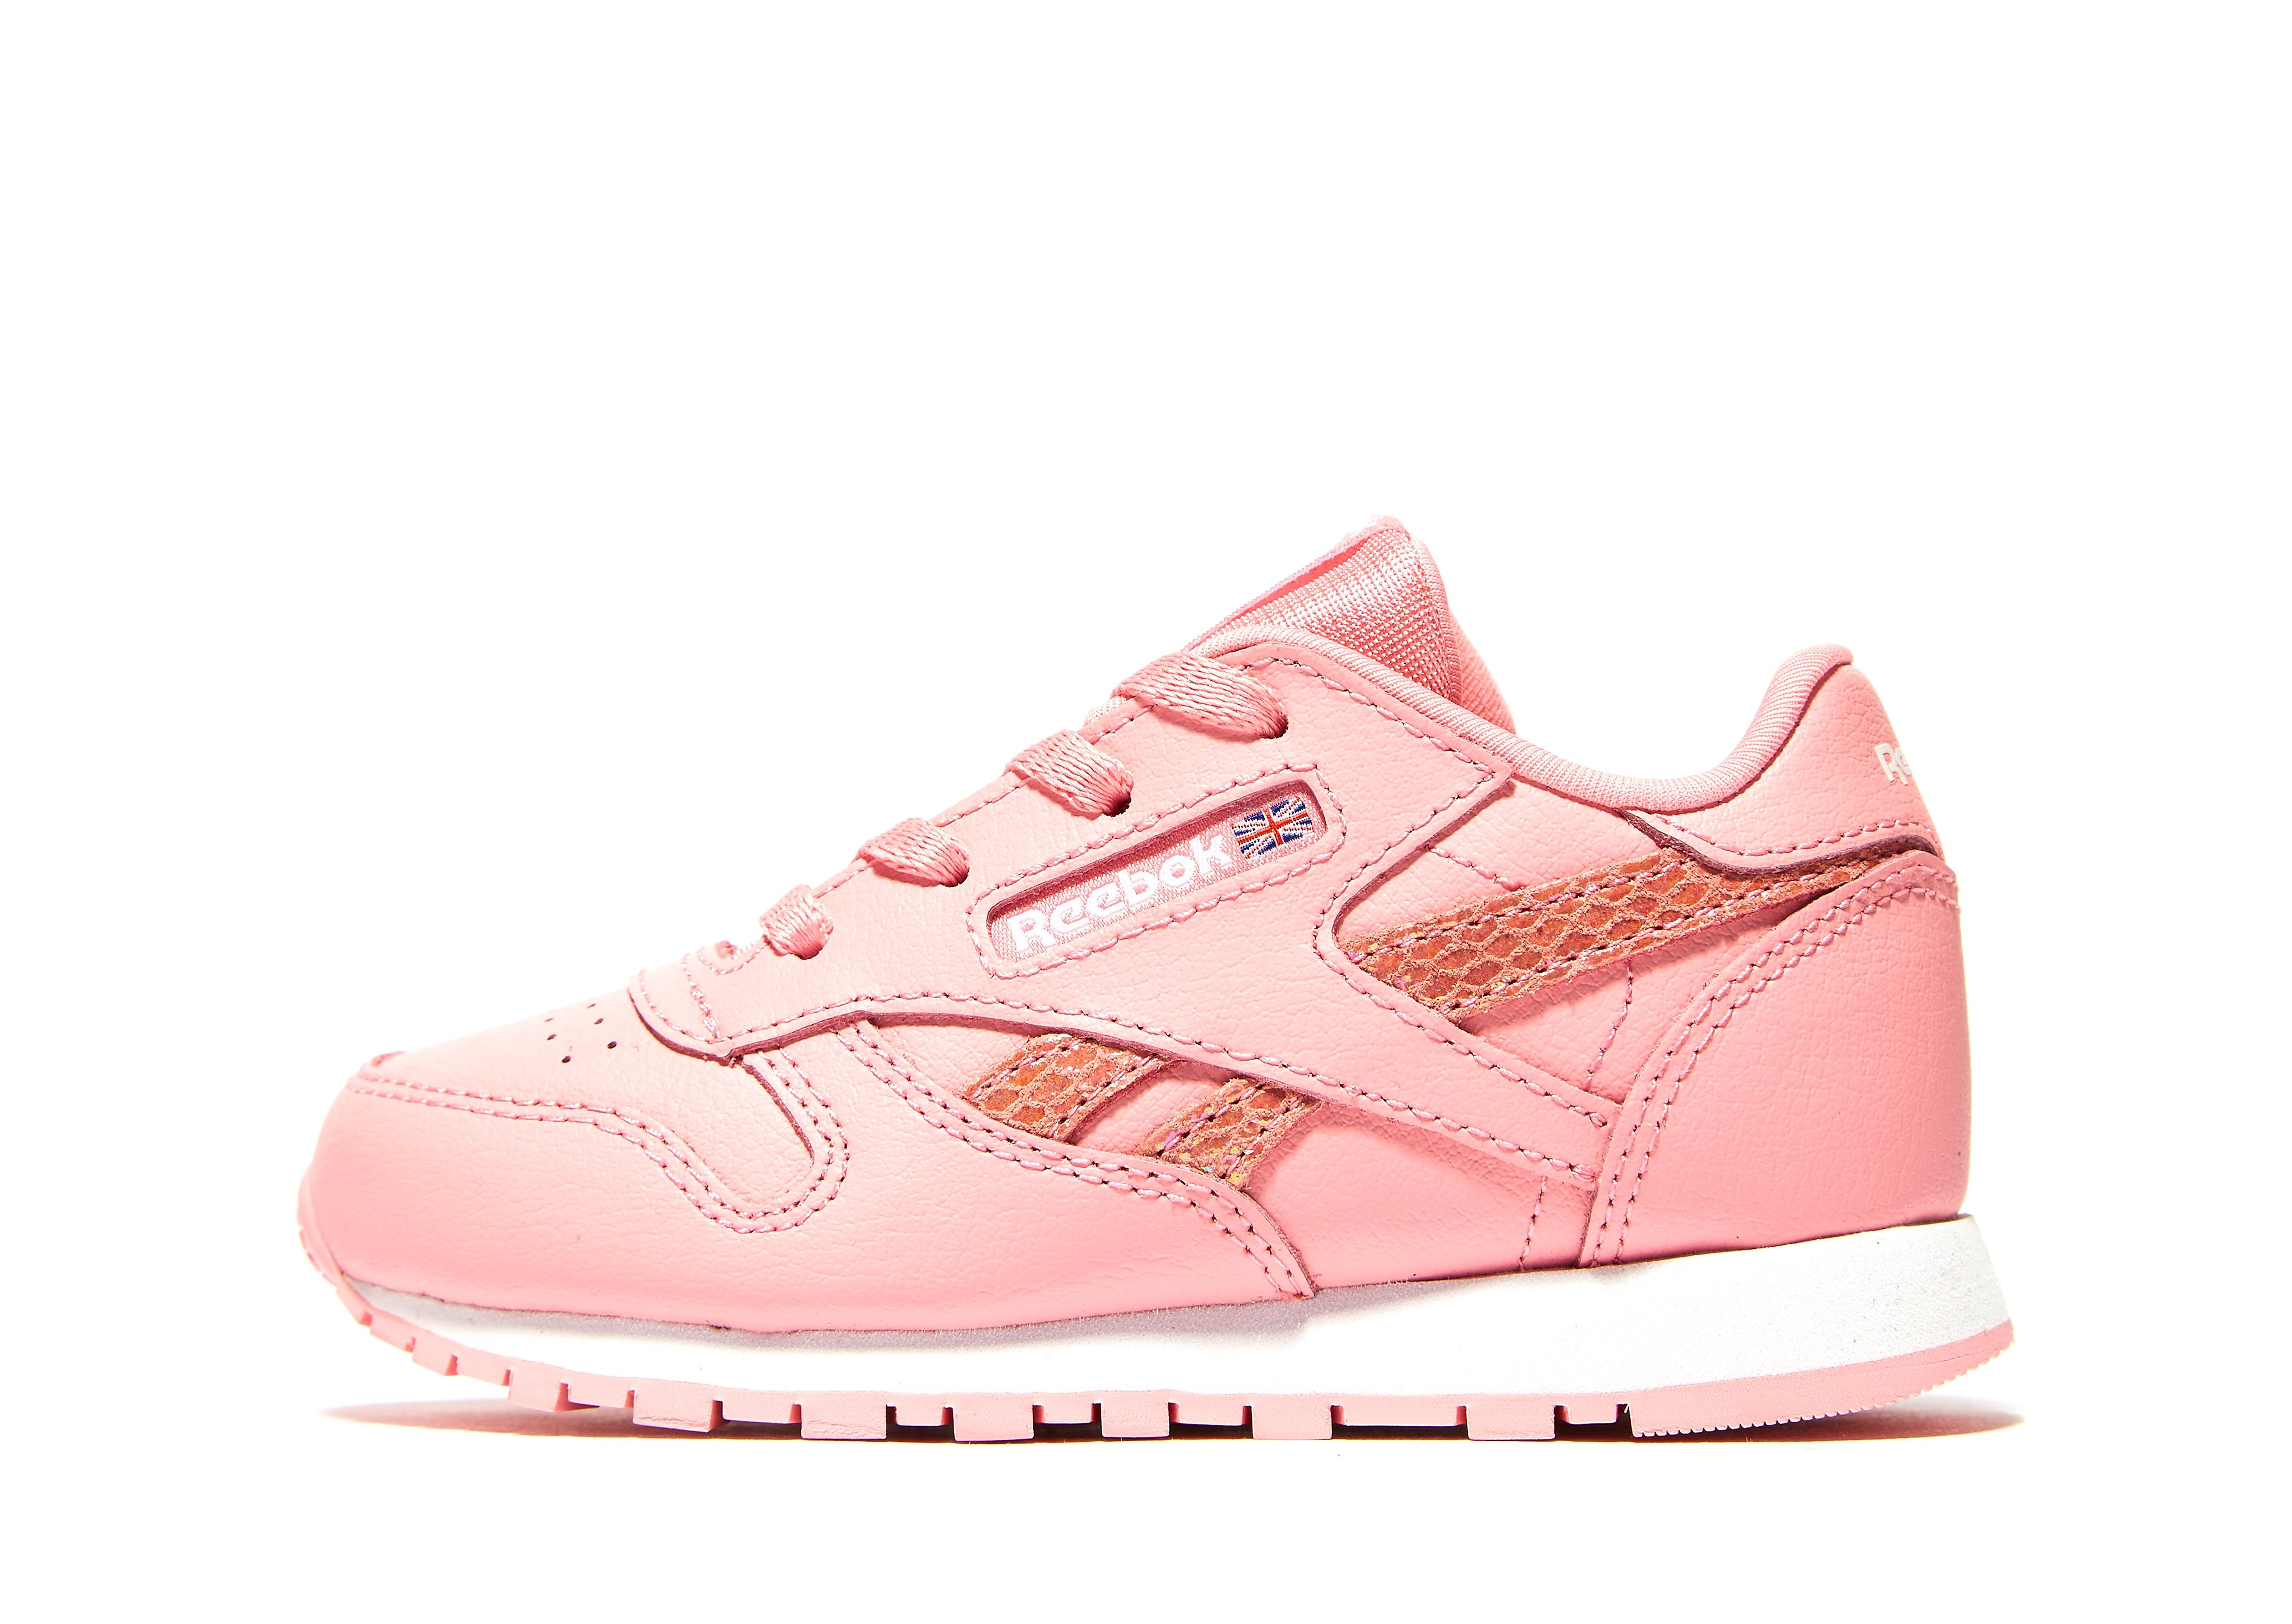 Reebok Classic Leather Baby's